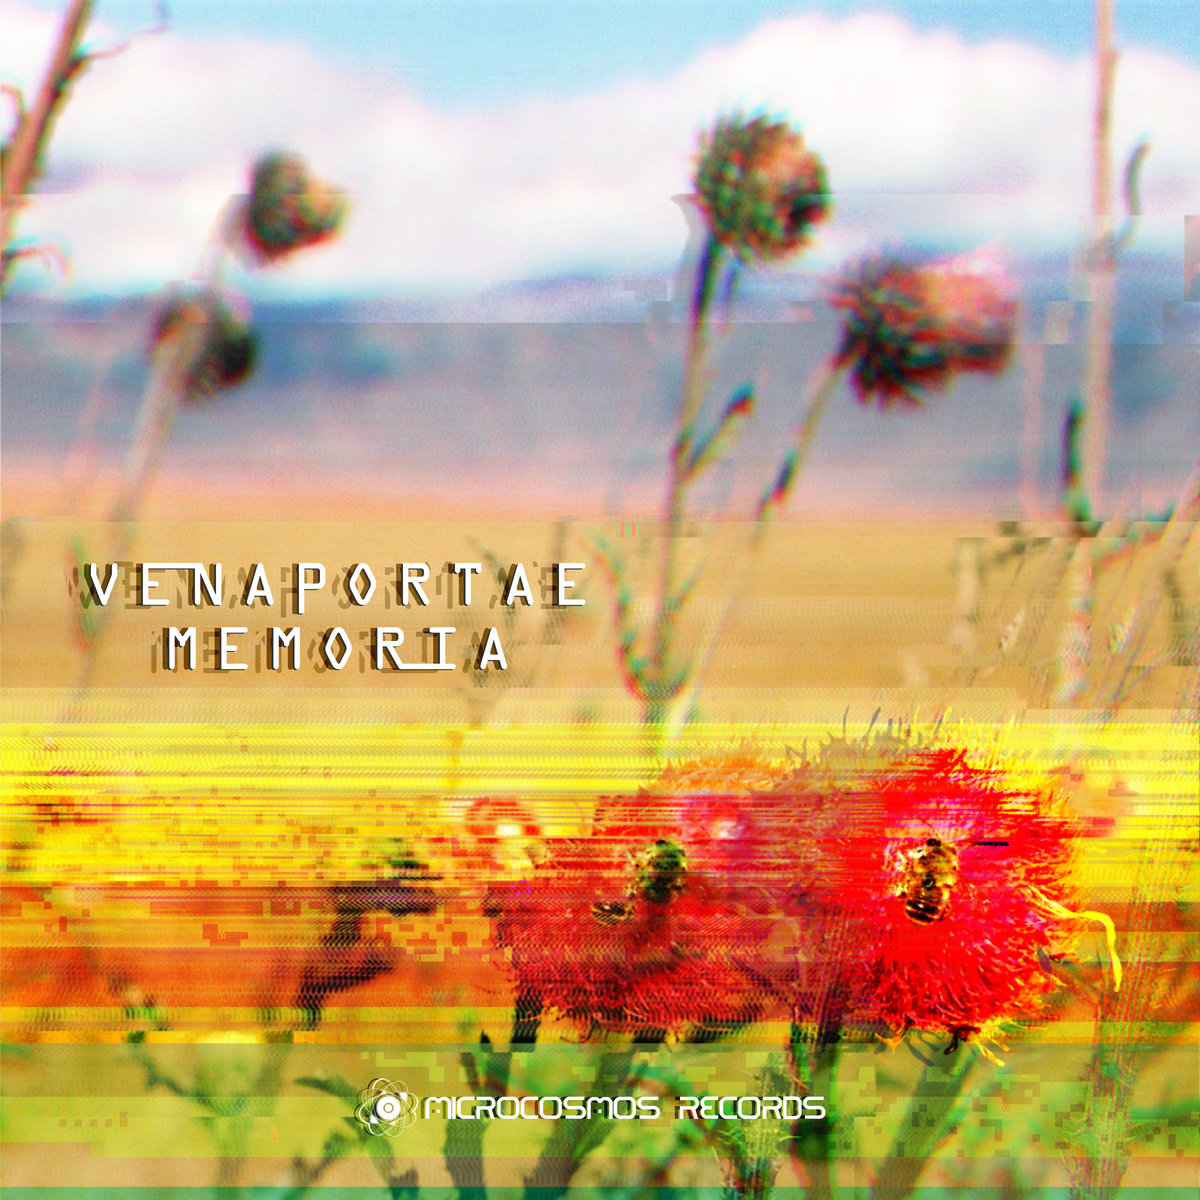 Vena Portae - Crystals In My Hand @ 'Memoria' album (ambient, chill-out)